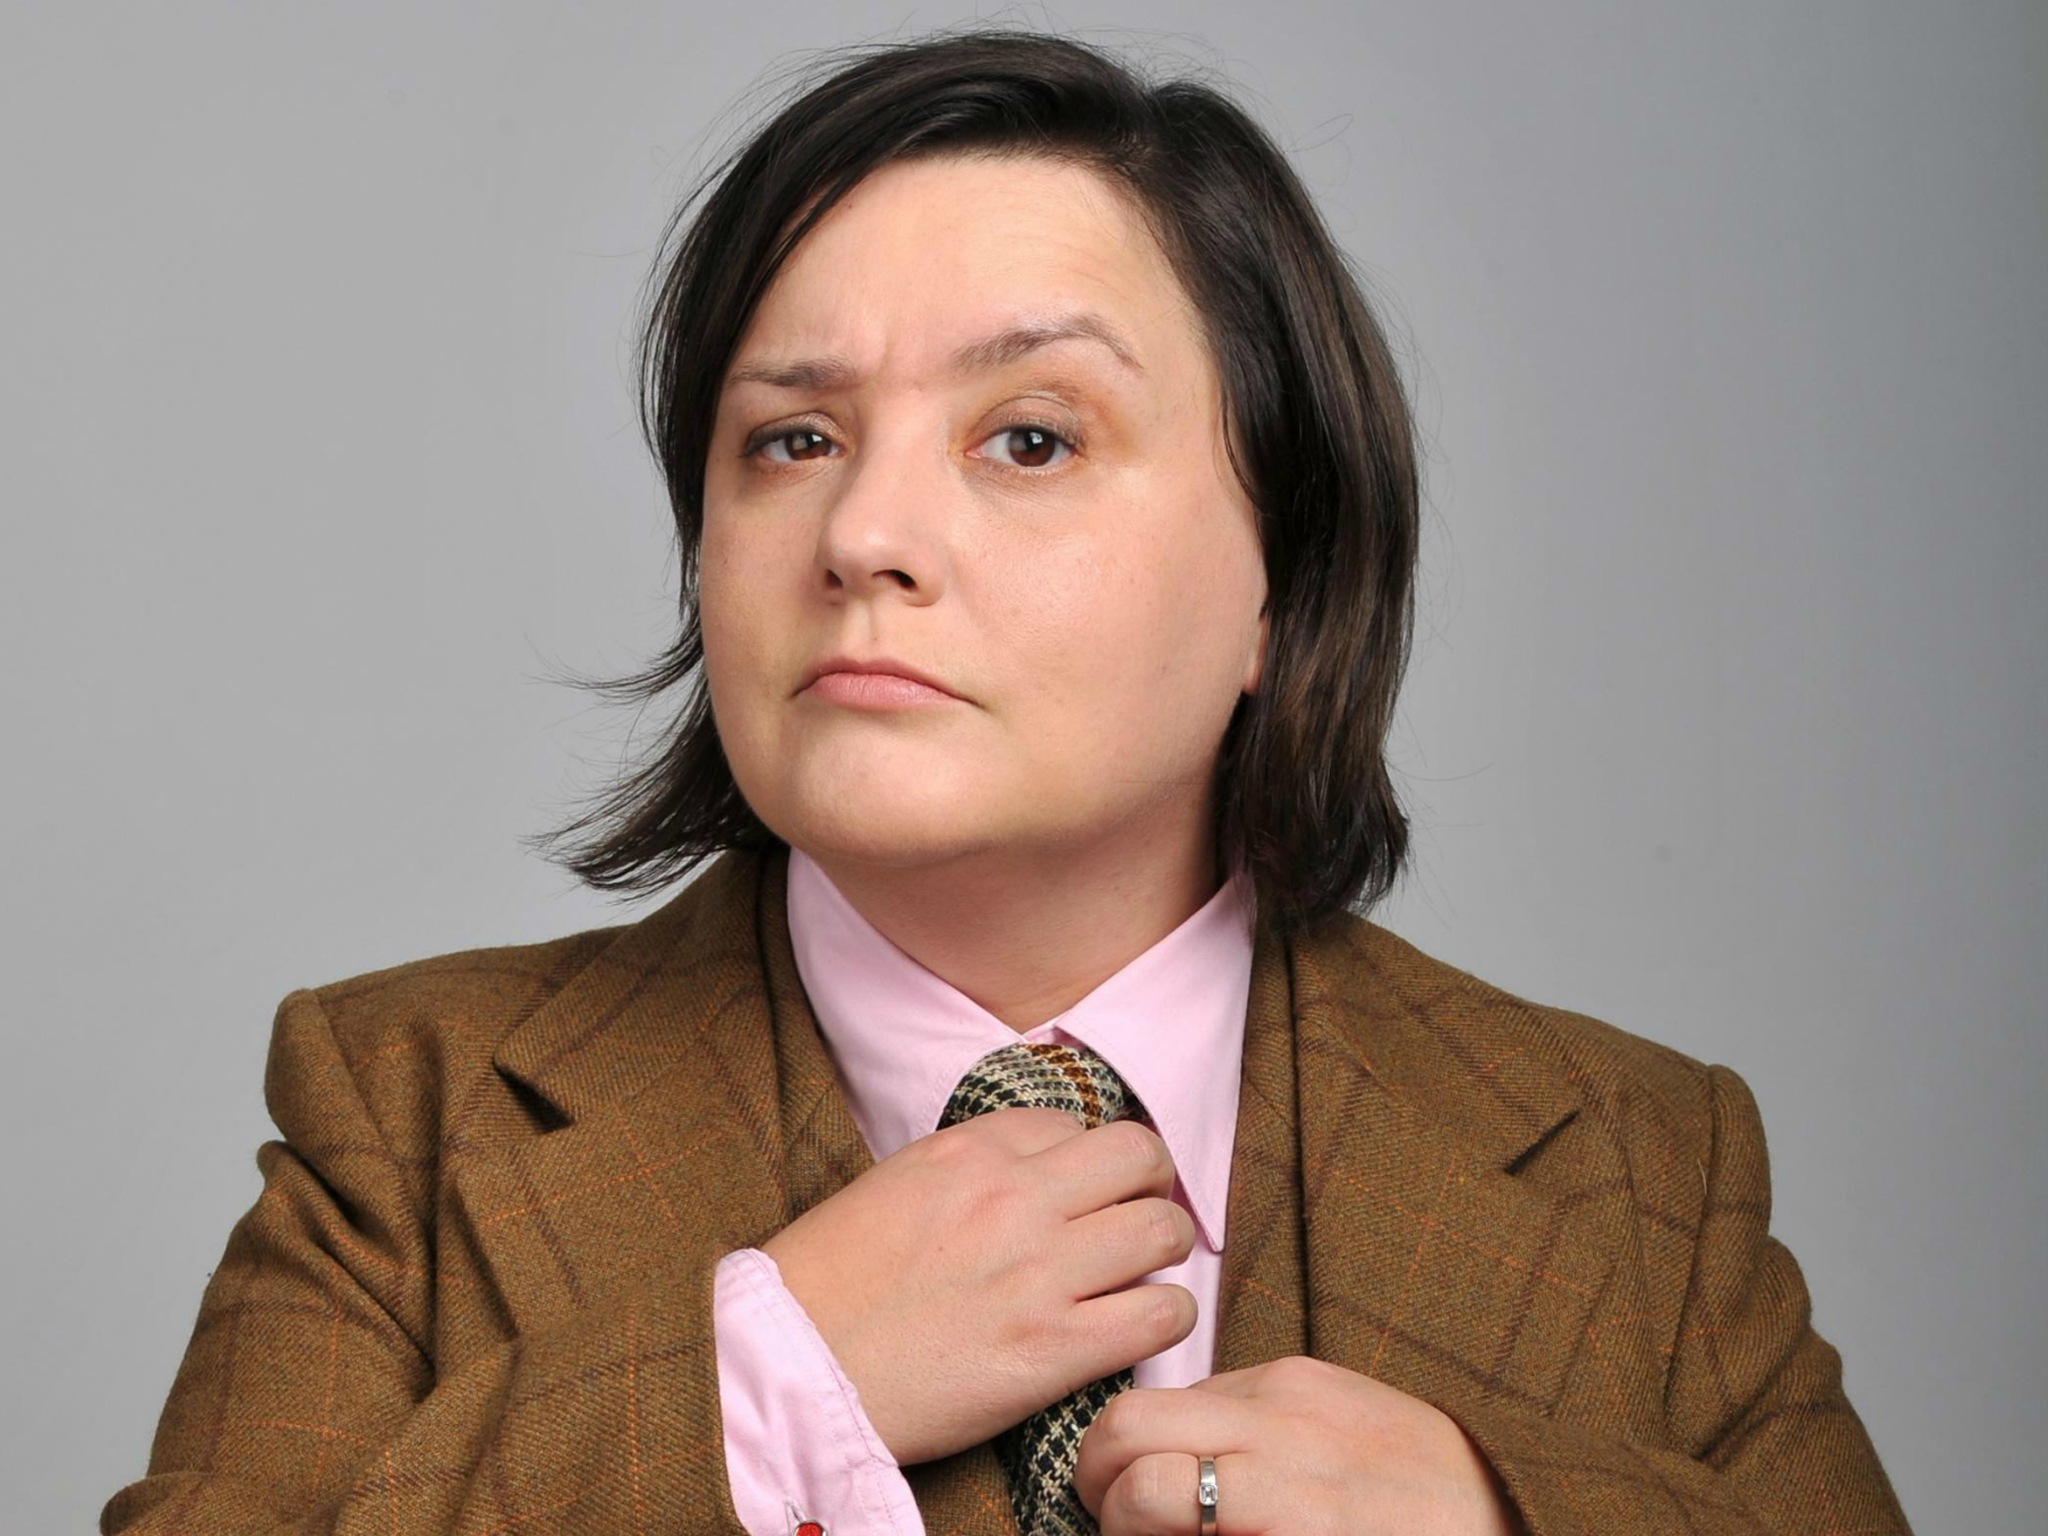 The 100 best comedy movies, Susan Calman